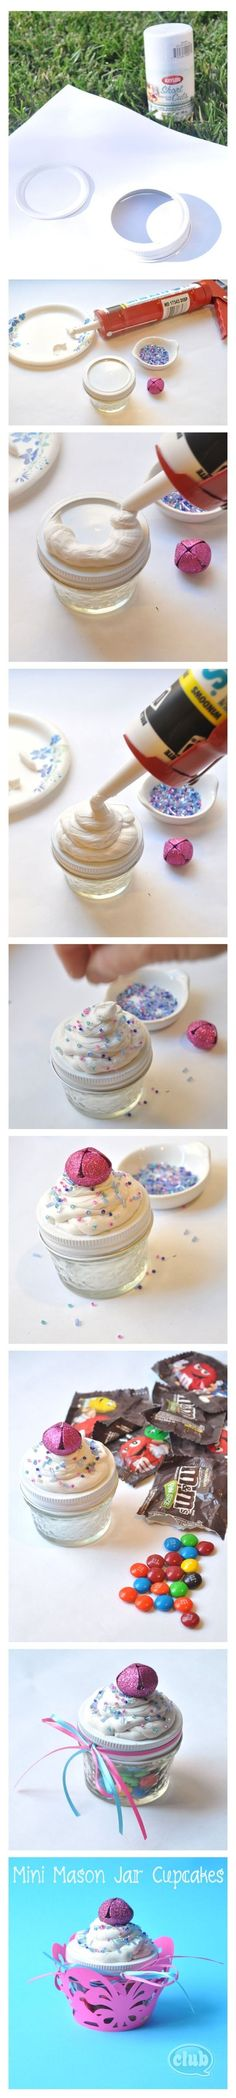 HOW TO cupcake mason jars inexpensive gifts for girls - Such a cute idea especially for a Bridal shower or Birthday party!